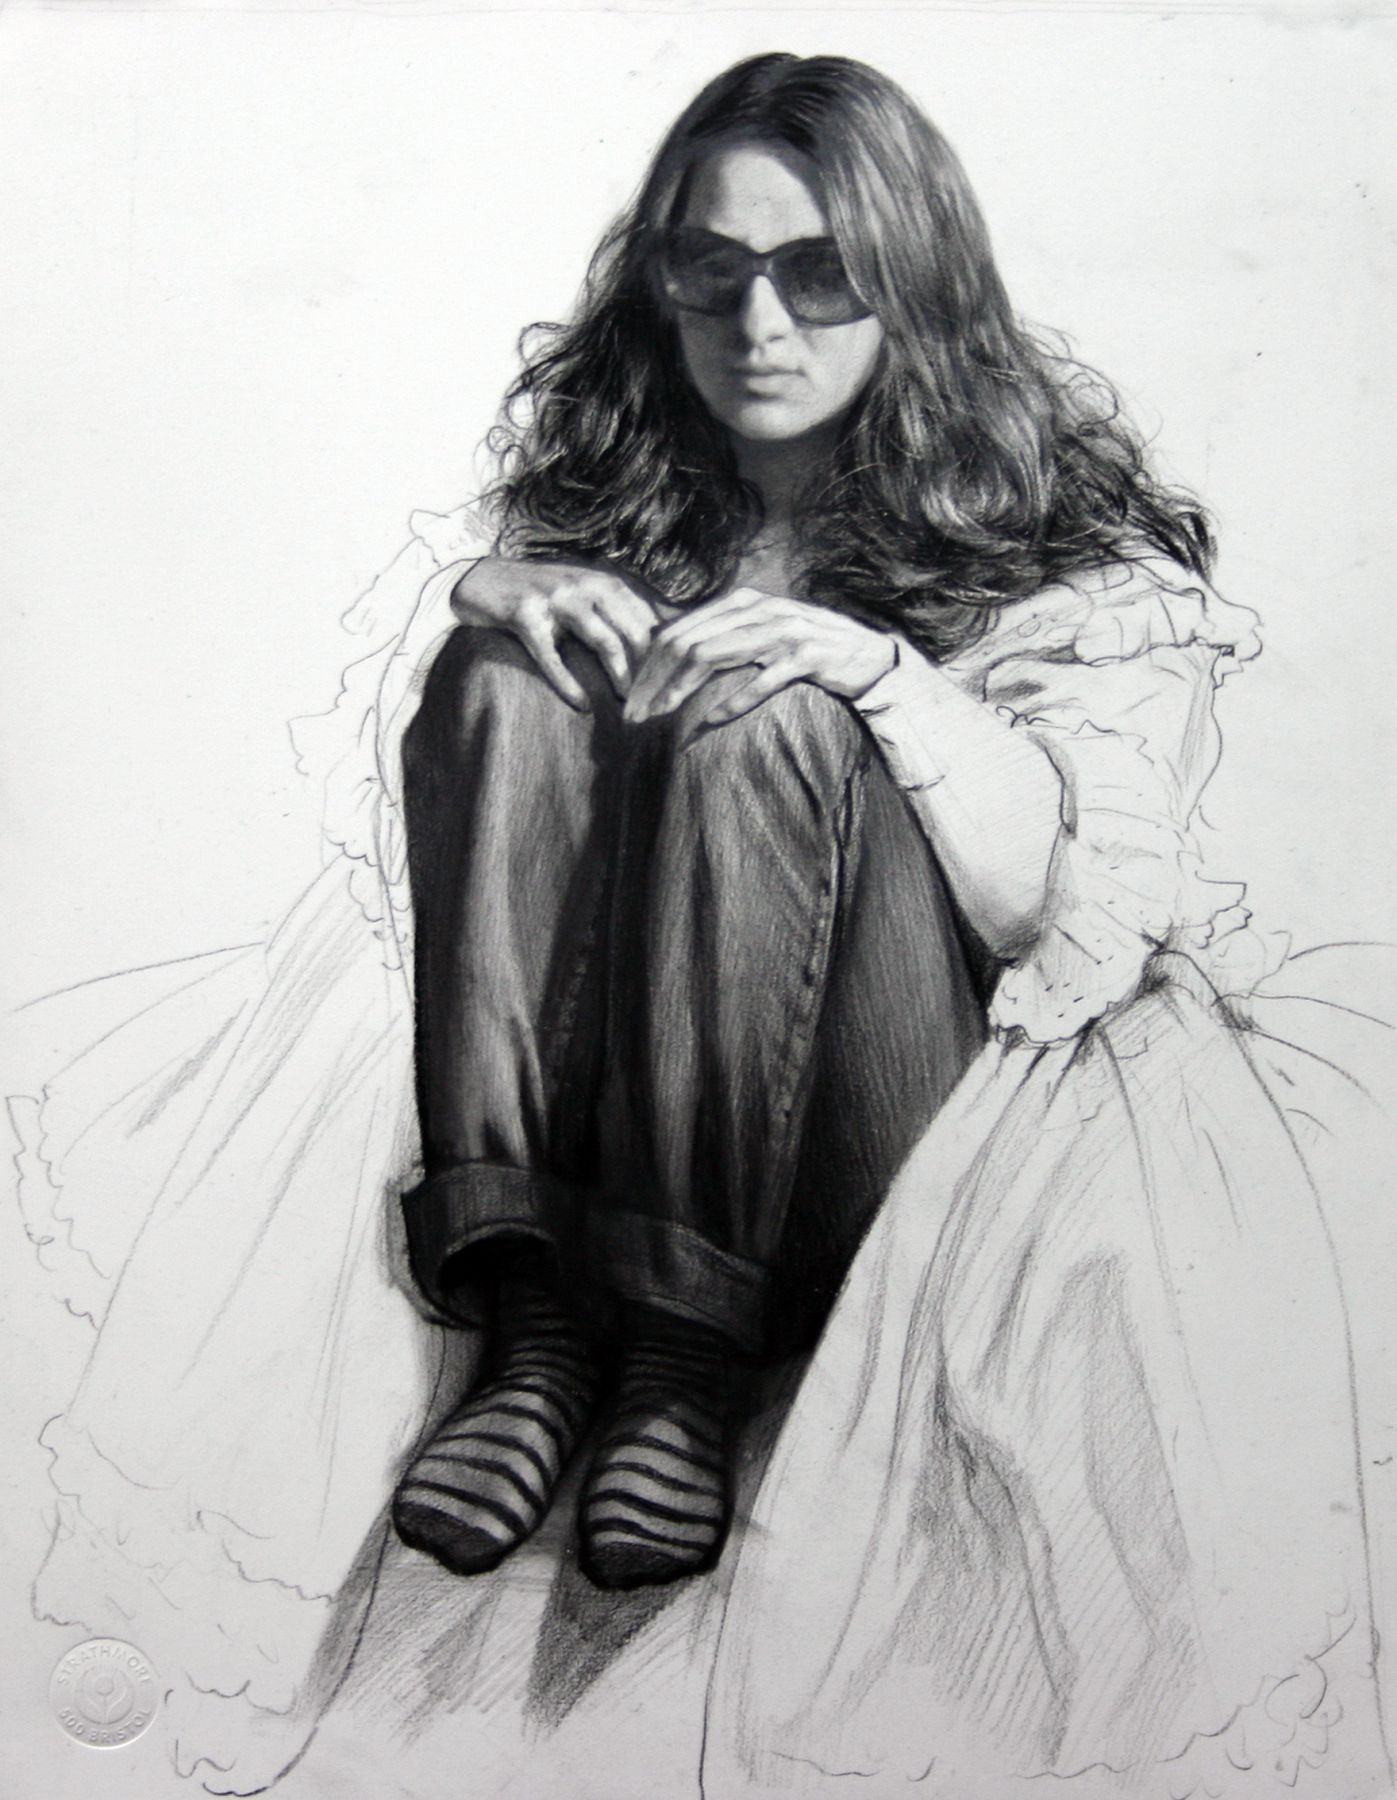 Steven Assael, Girl with Sunglasses (SOLD), 2008, crayon and graphite on paper, 14 1/8 x 11 inches